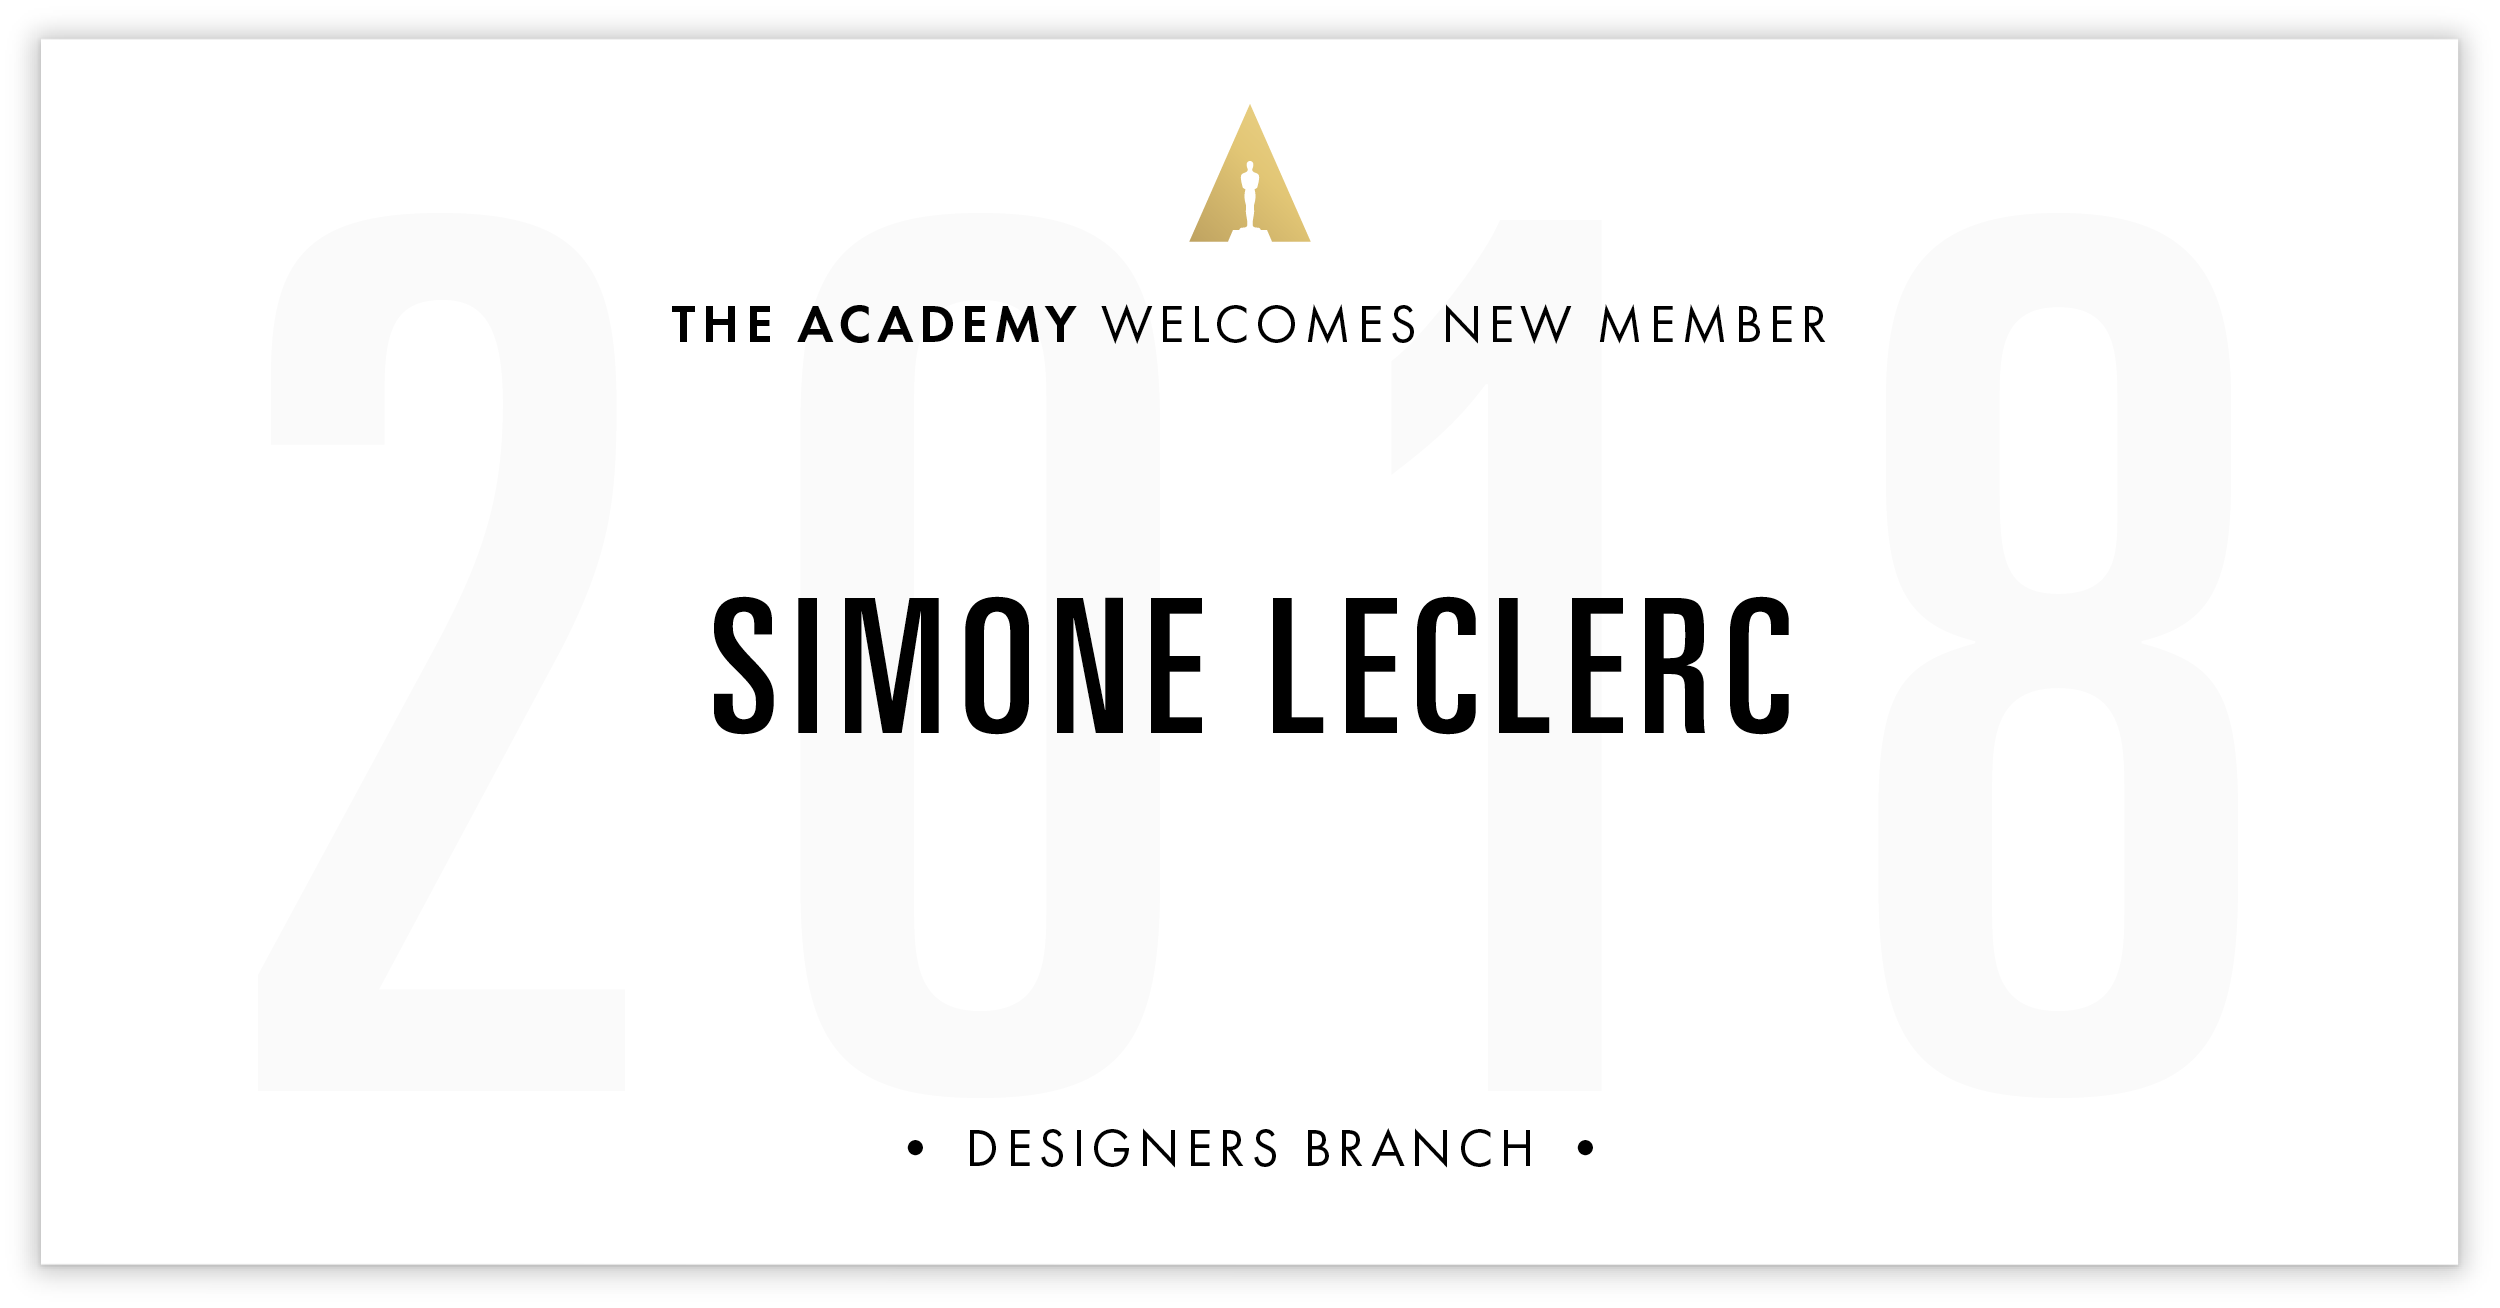 Simone Leclerc is invited!